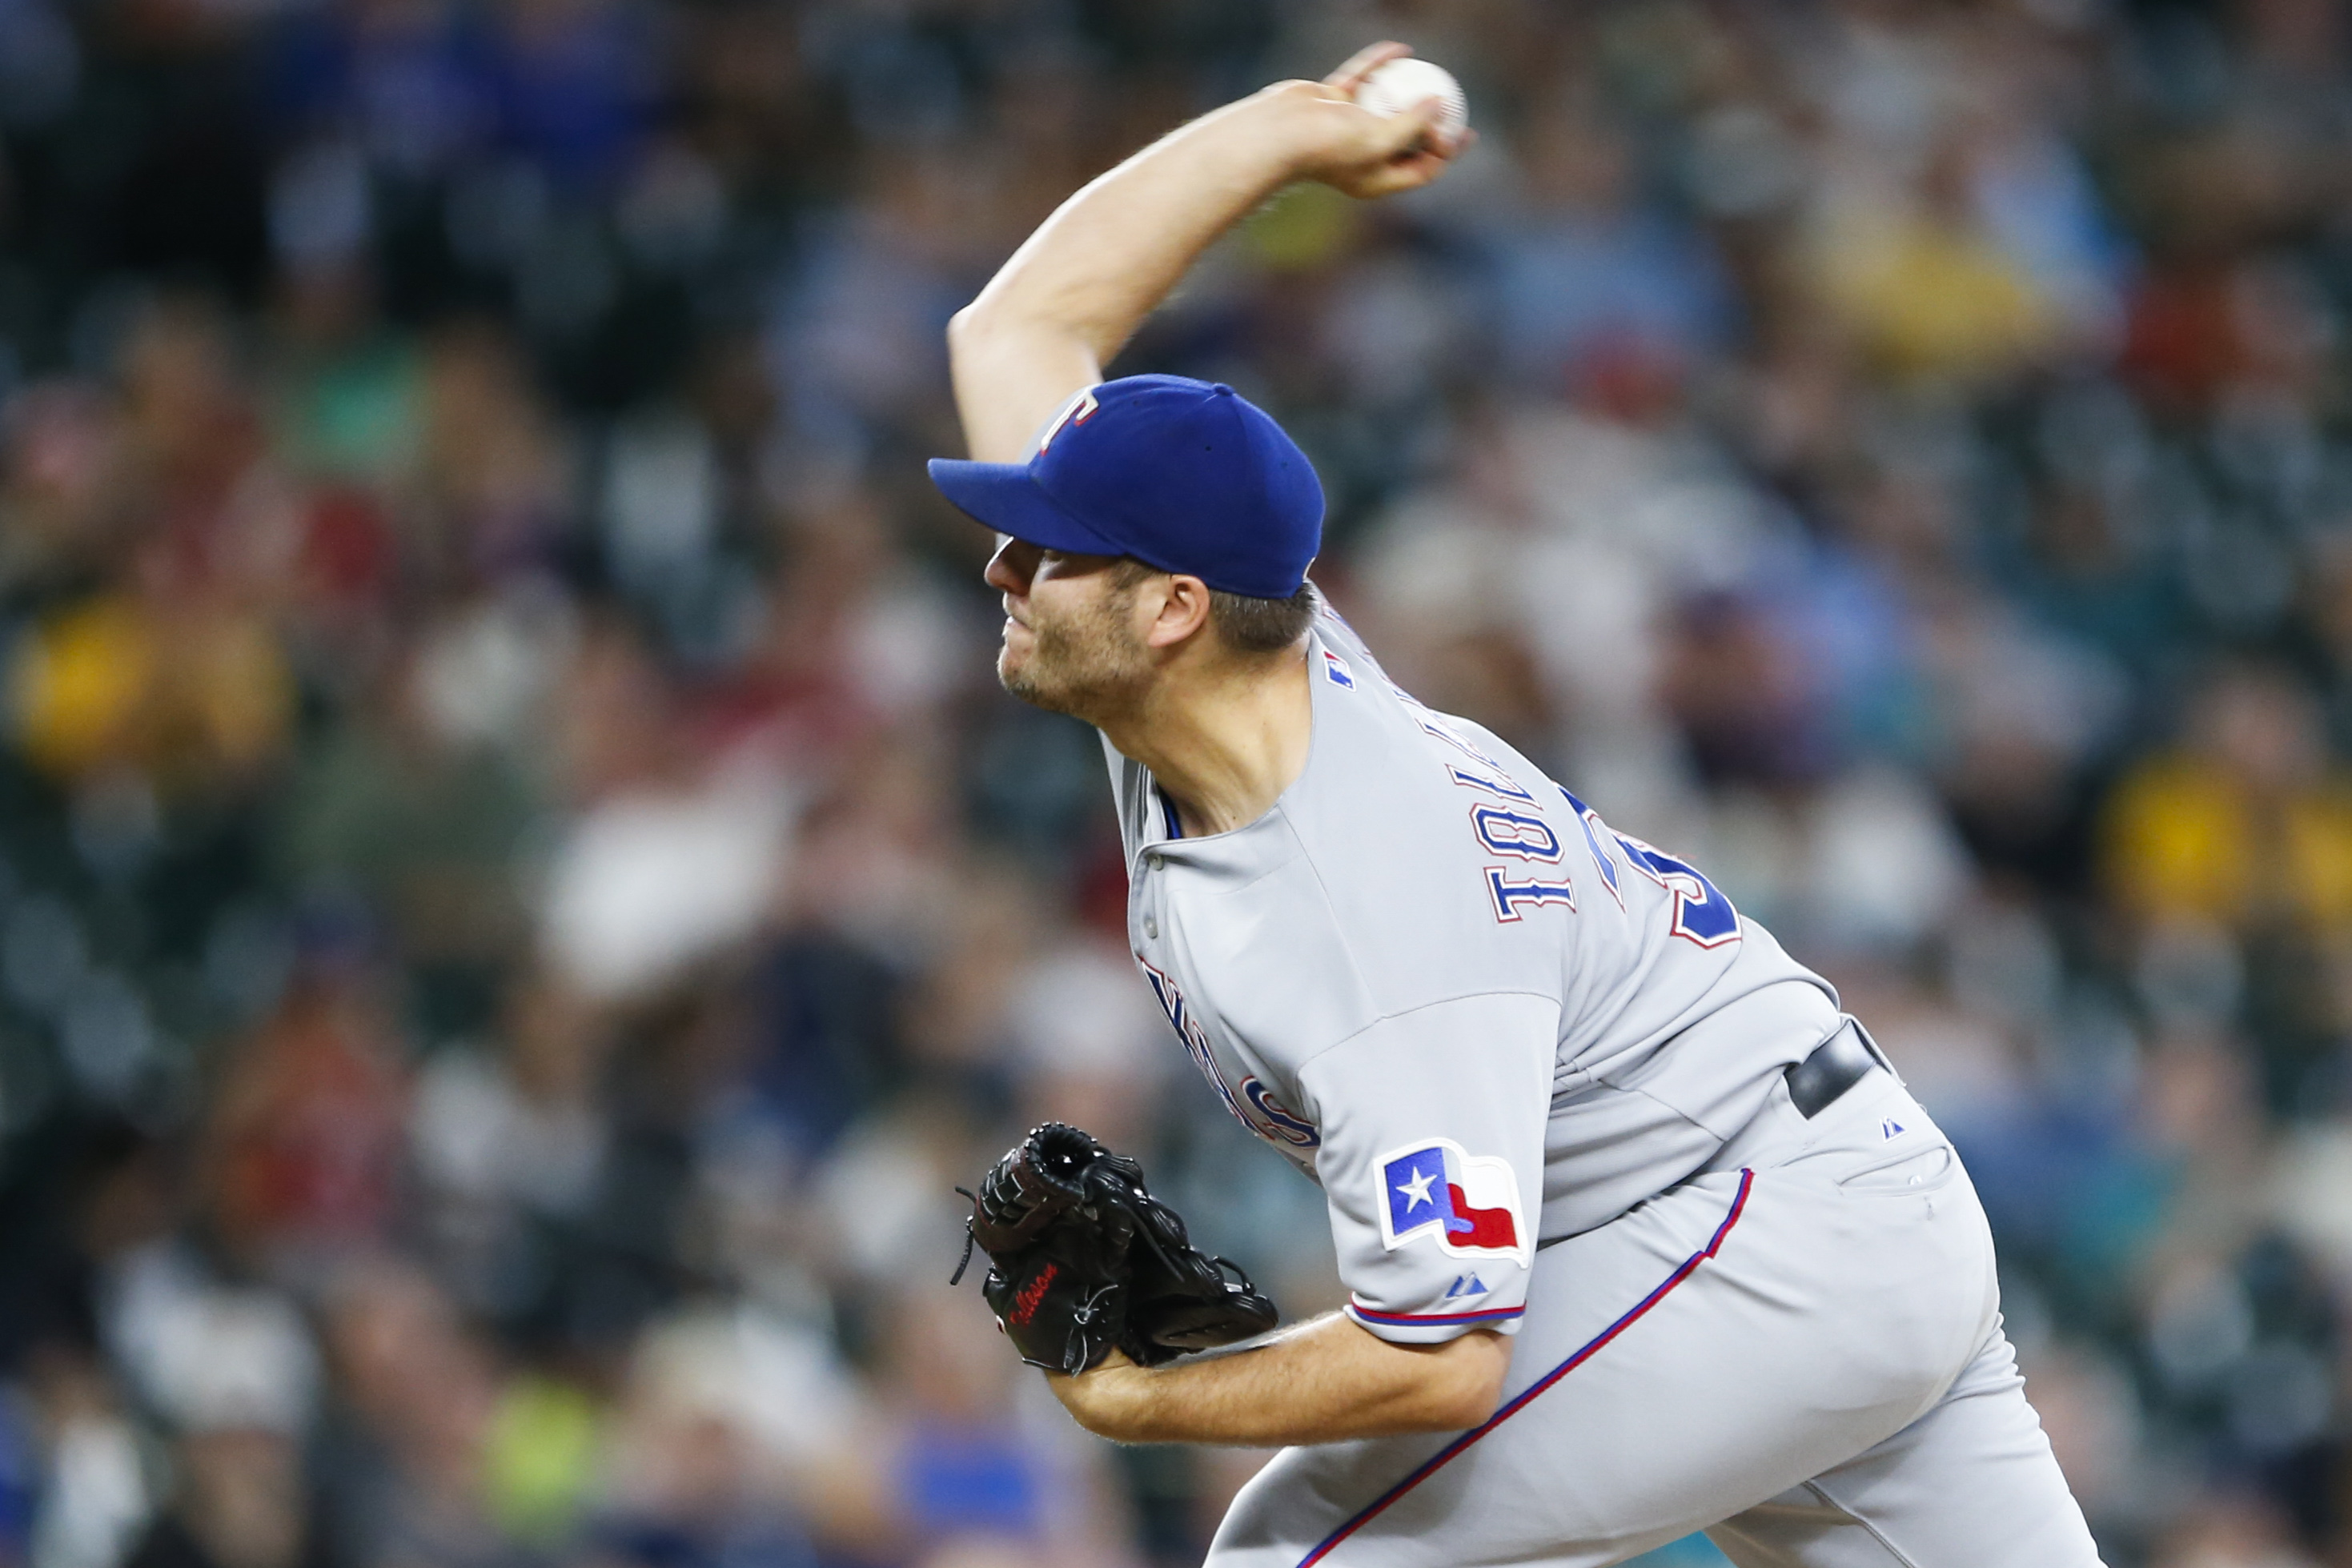 Texas Rangers pitcher Shawn Tolleson throws during the 11th inning out of a baseball game against the Seattle Mariners, Saturday, Aug. 8, 2015, in Seattle. Texas defeated Seattle 11-3 in eleven11